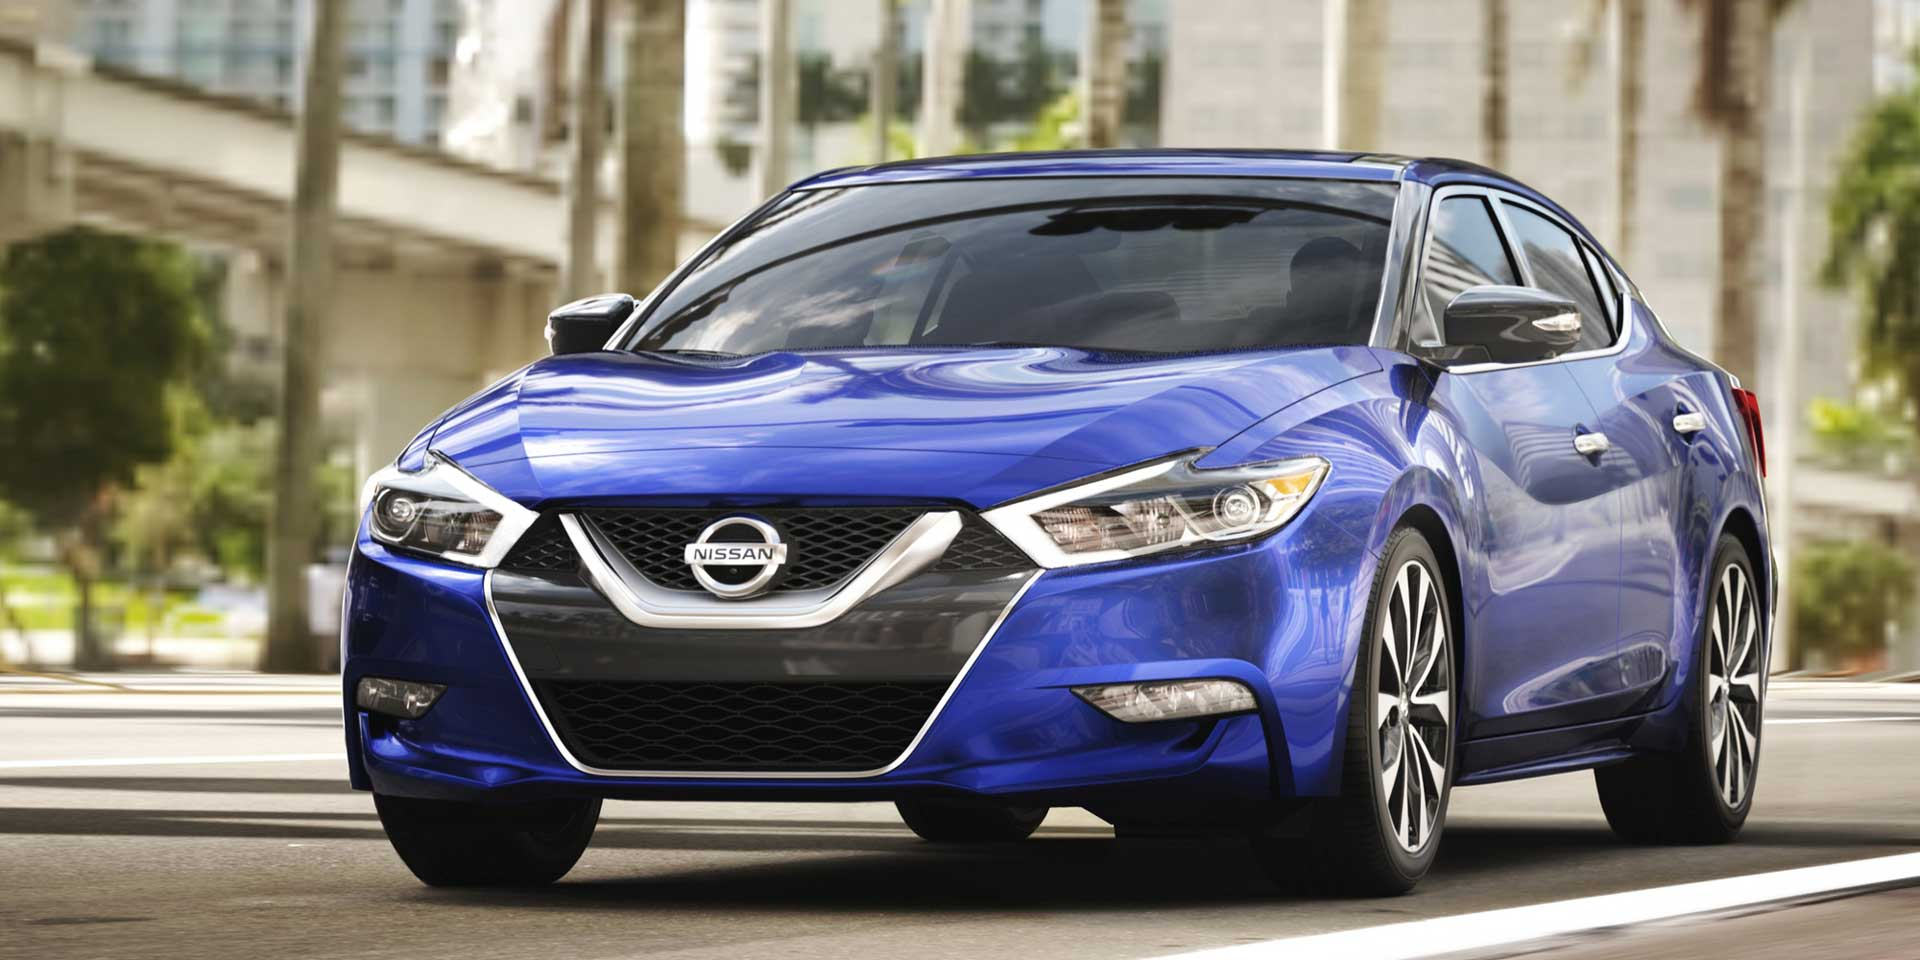 2017 Nissan Maxima: Billed As A Four Door Sports Car, The 2017 Nissan Maxima  Straddles The Line Between Being A Large Mid Size Sedan And An Entry Luxury  ...